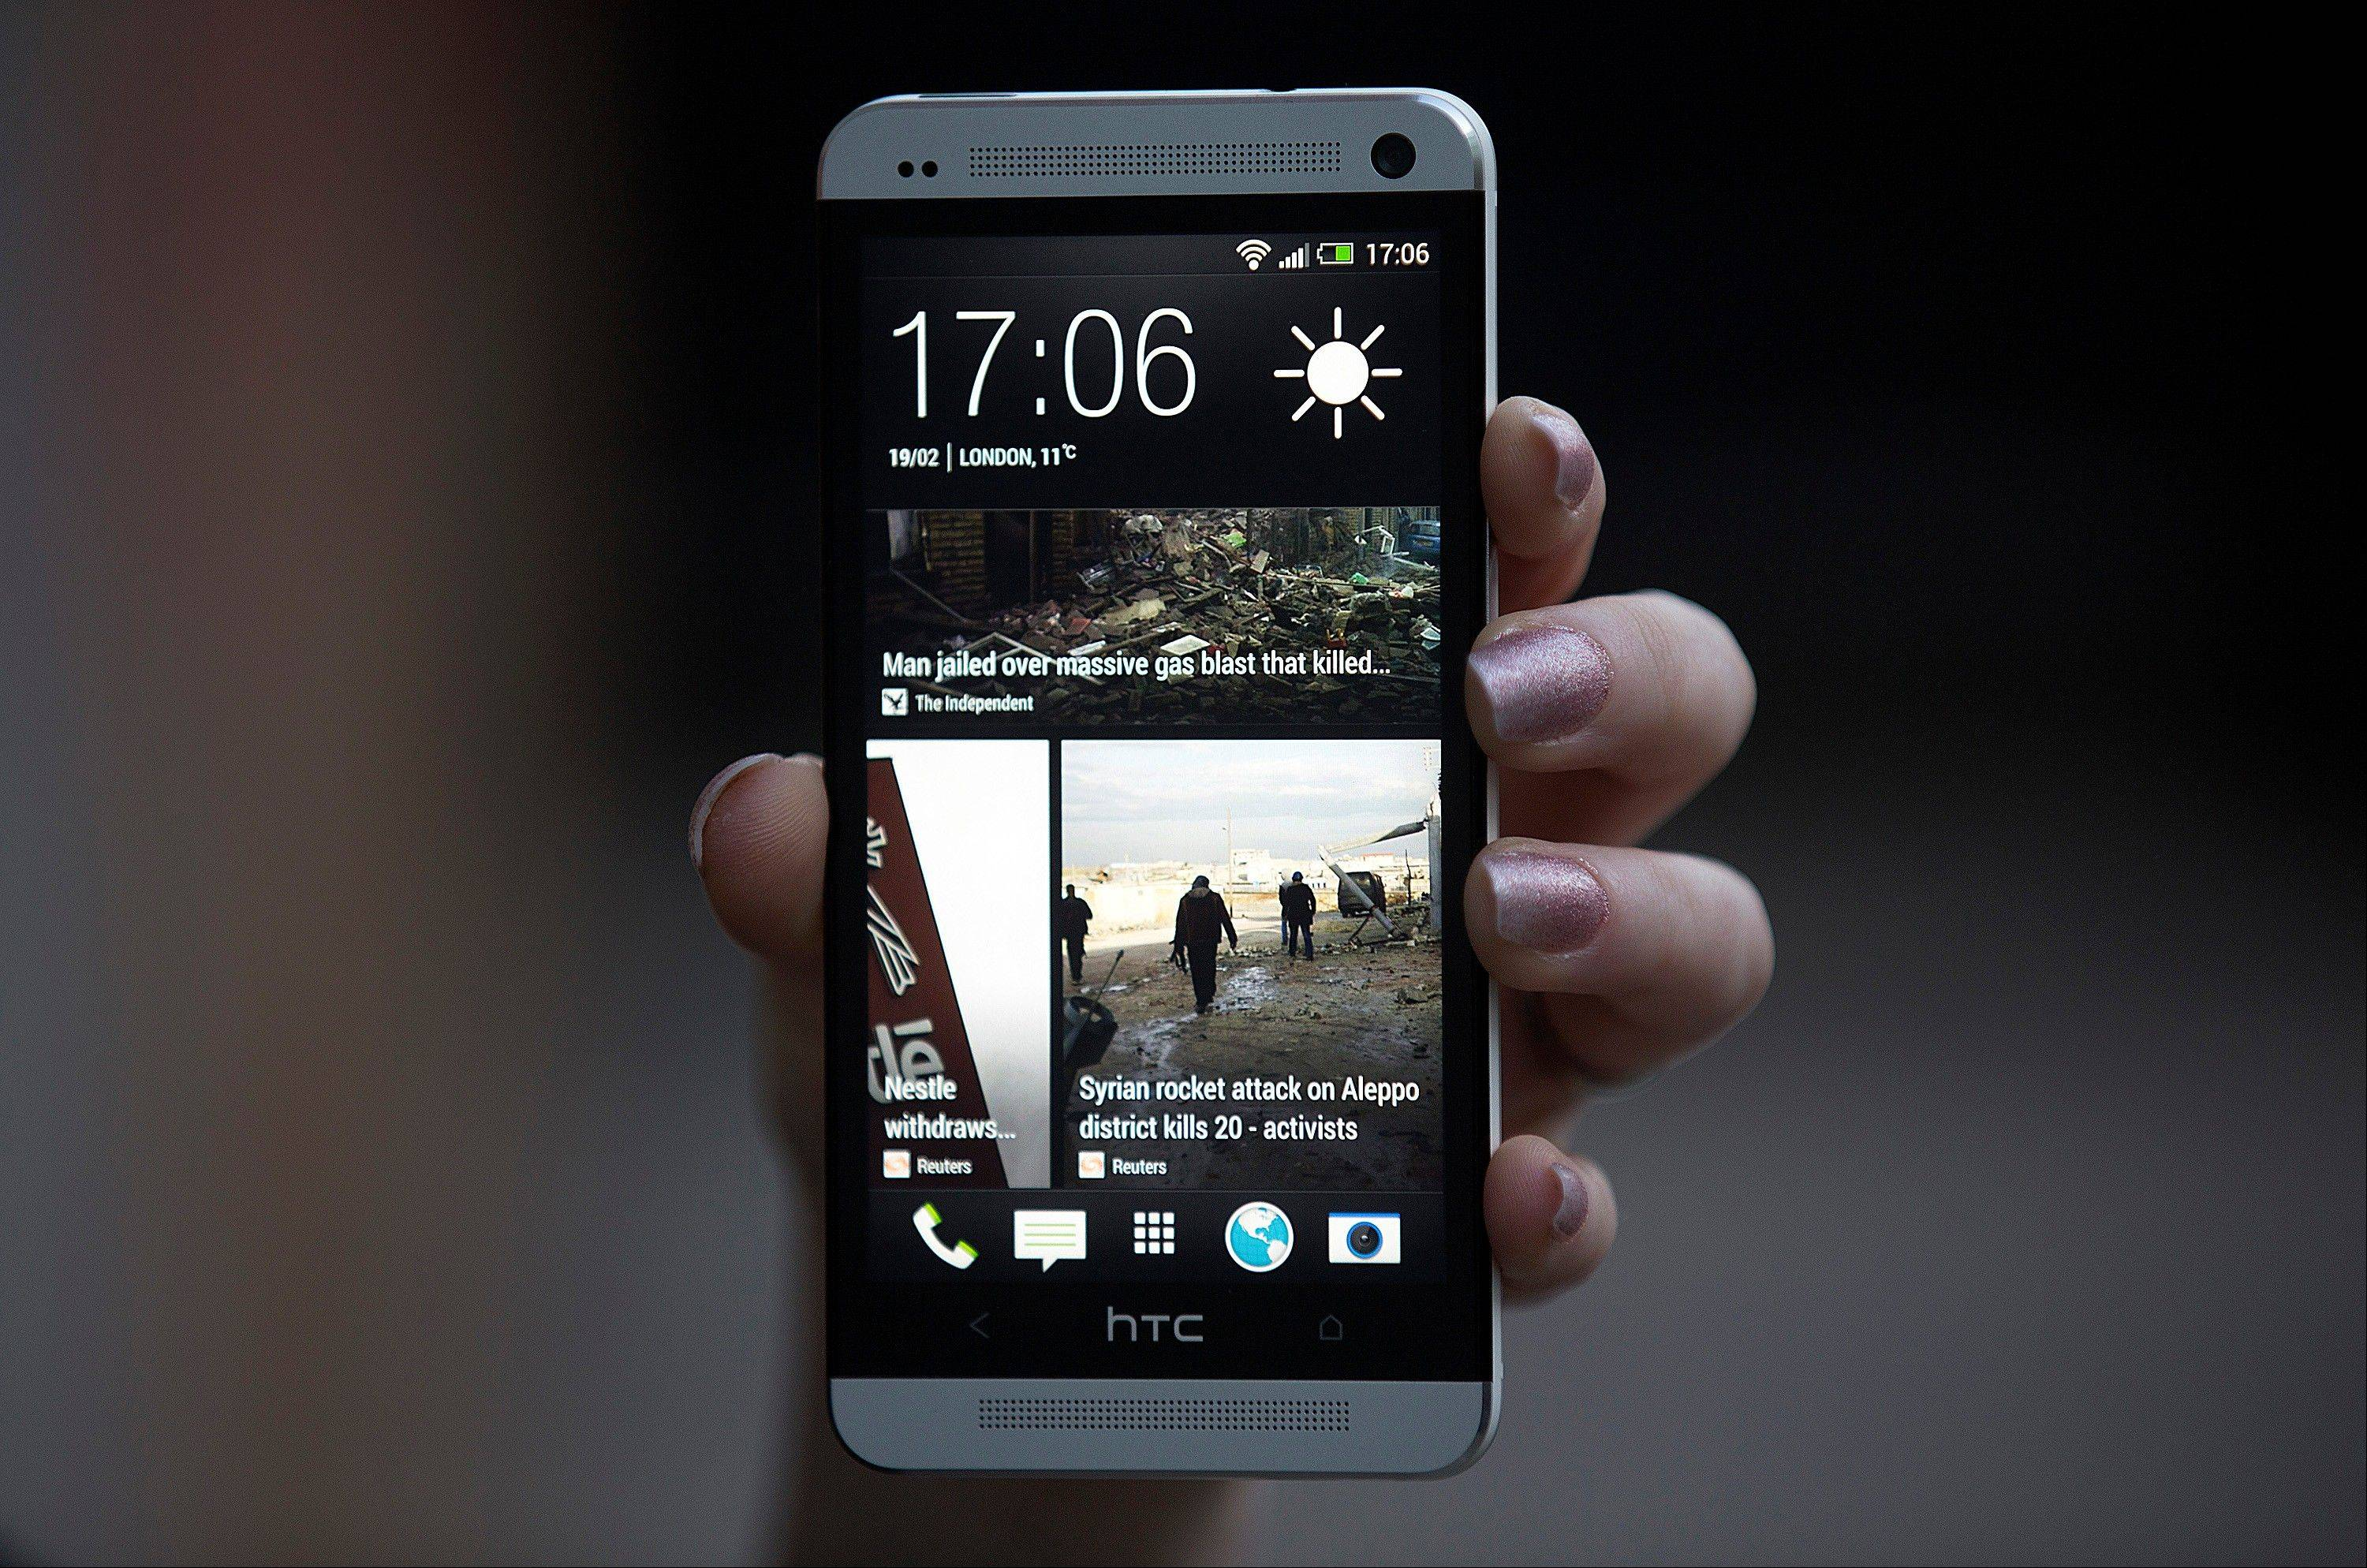 HTC Corp. introduced its new flagship HTC One smartphone at a launch event in London Tuesday.